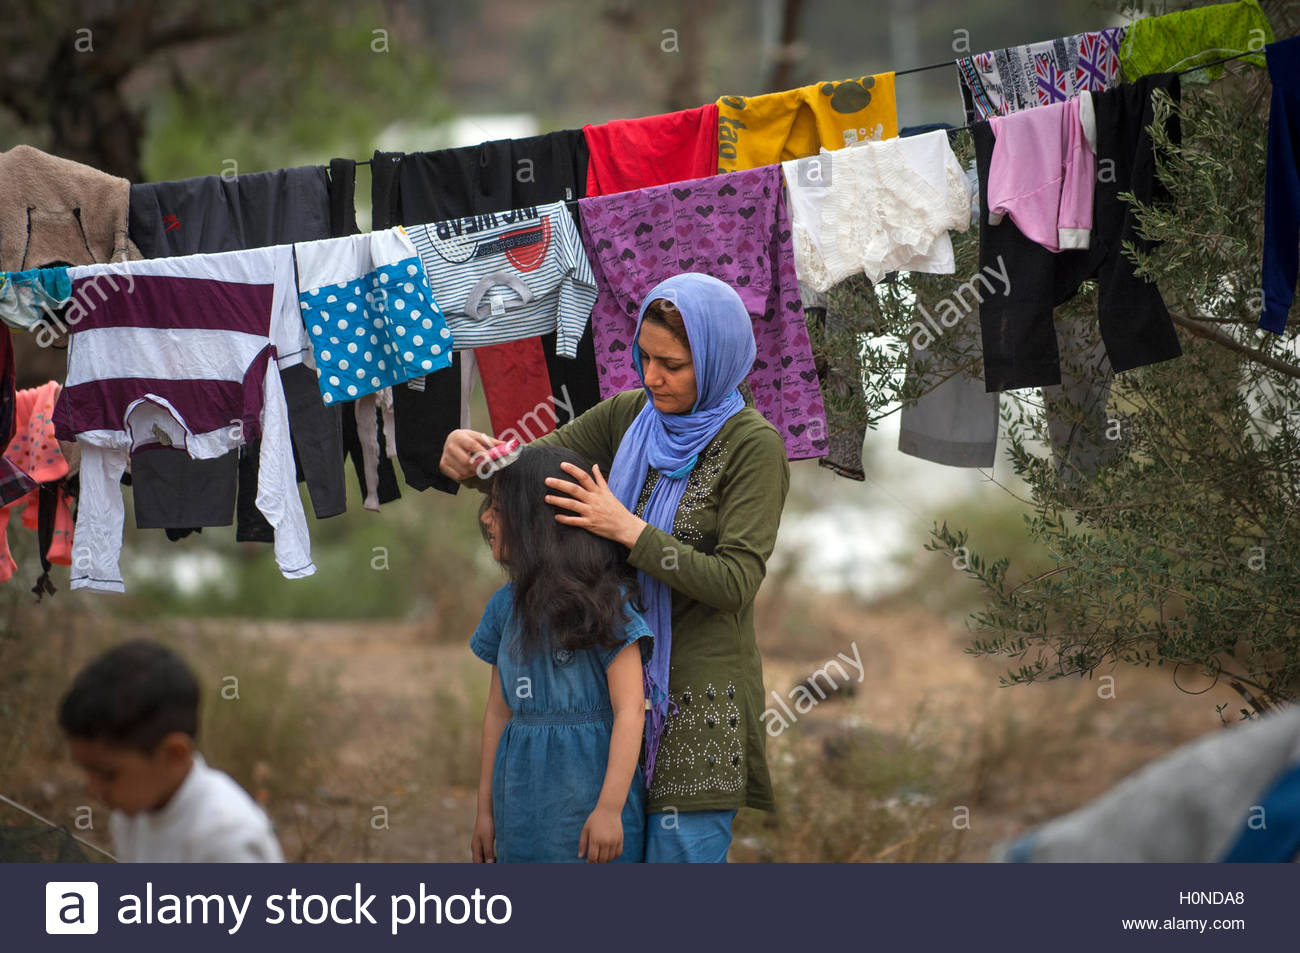 A refugee mother combs her daughter's hair at Moria Refugee Camp, Lesbos, Greece. - Stock Image